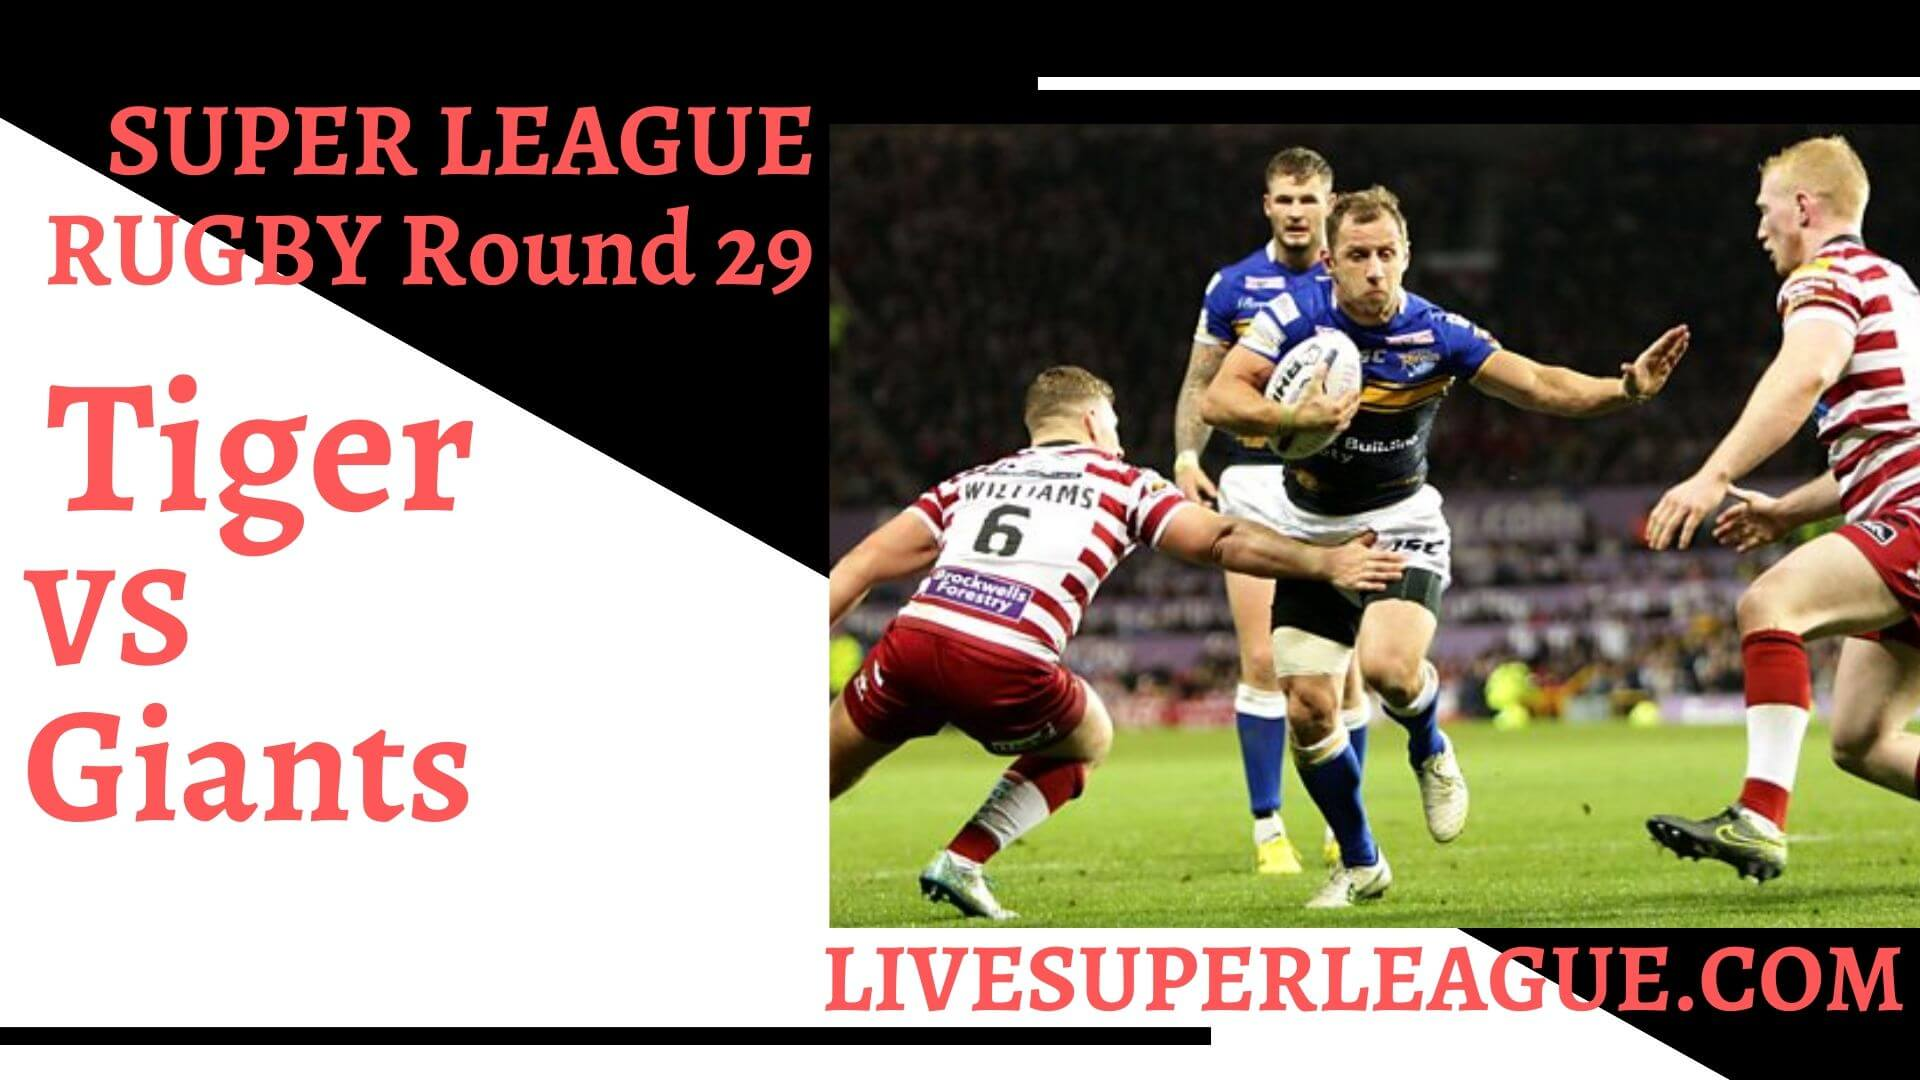 Castleford Tiger Vs Huddersfield Giants Live Stream | Round 29: Full Match Replay